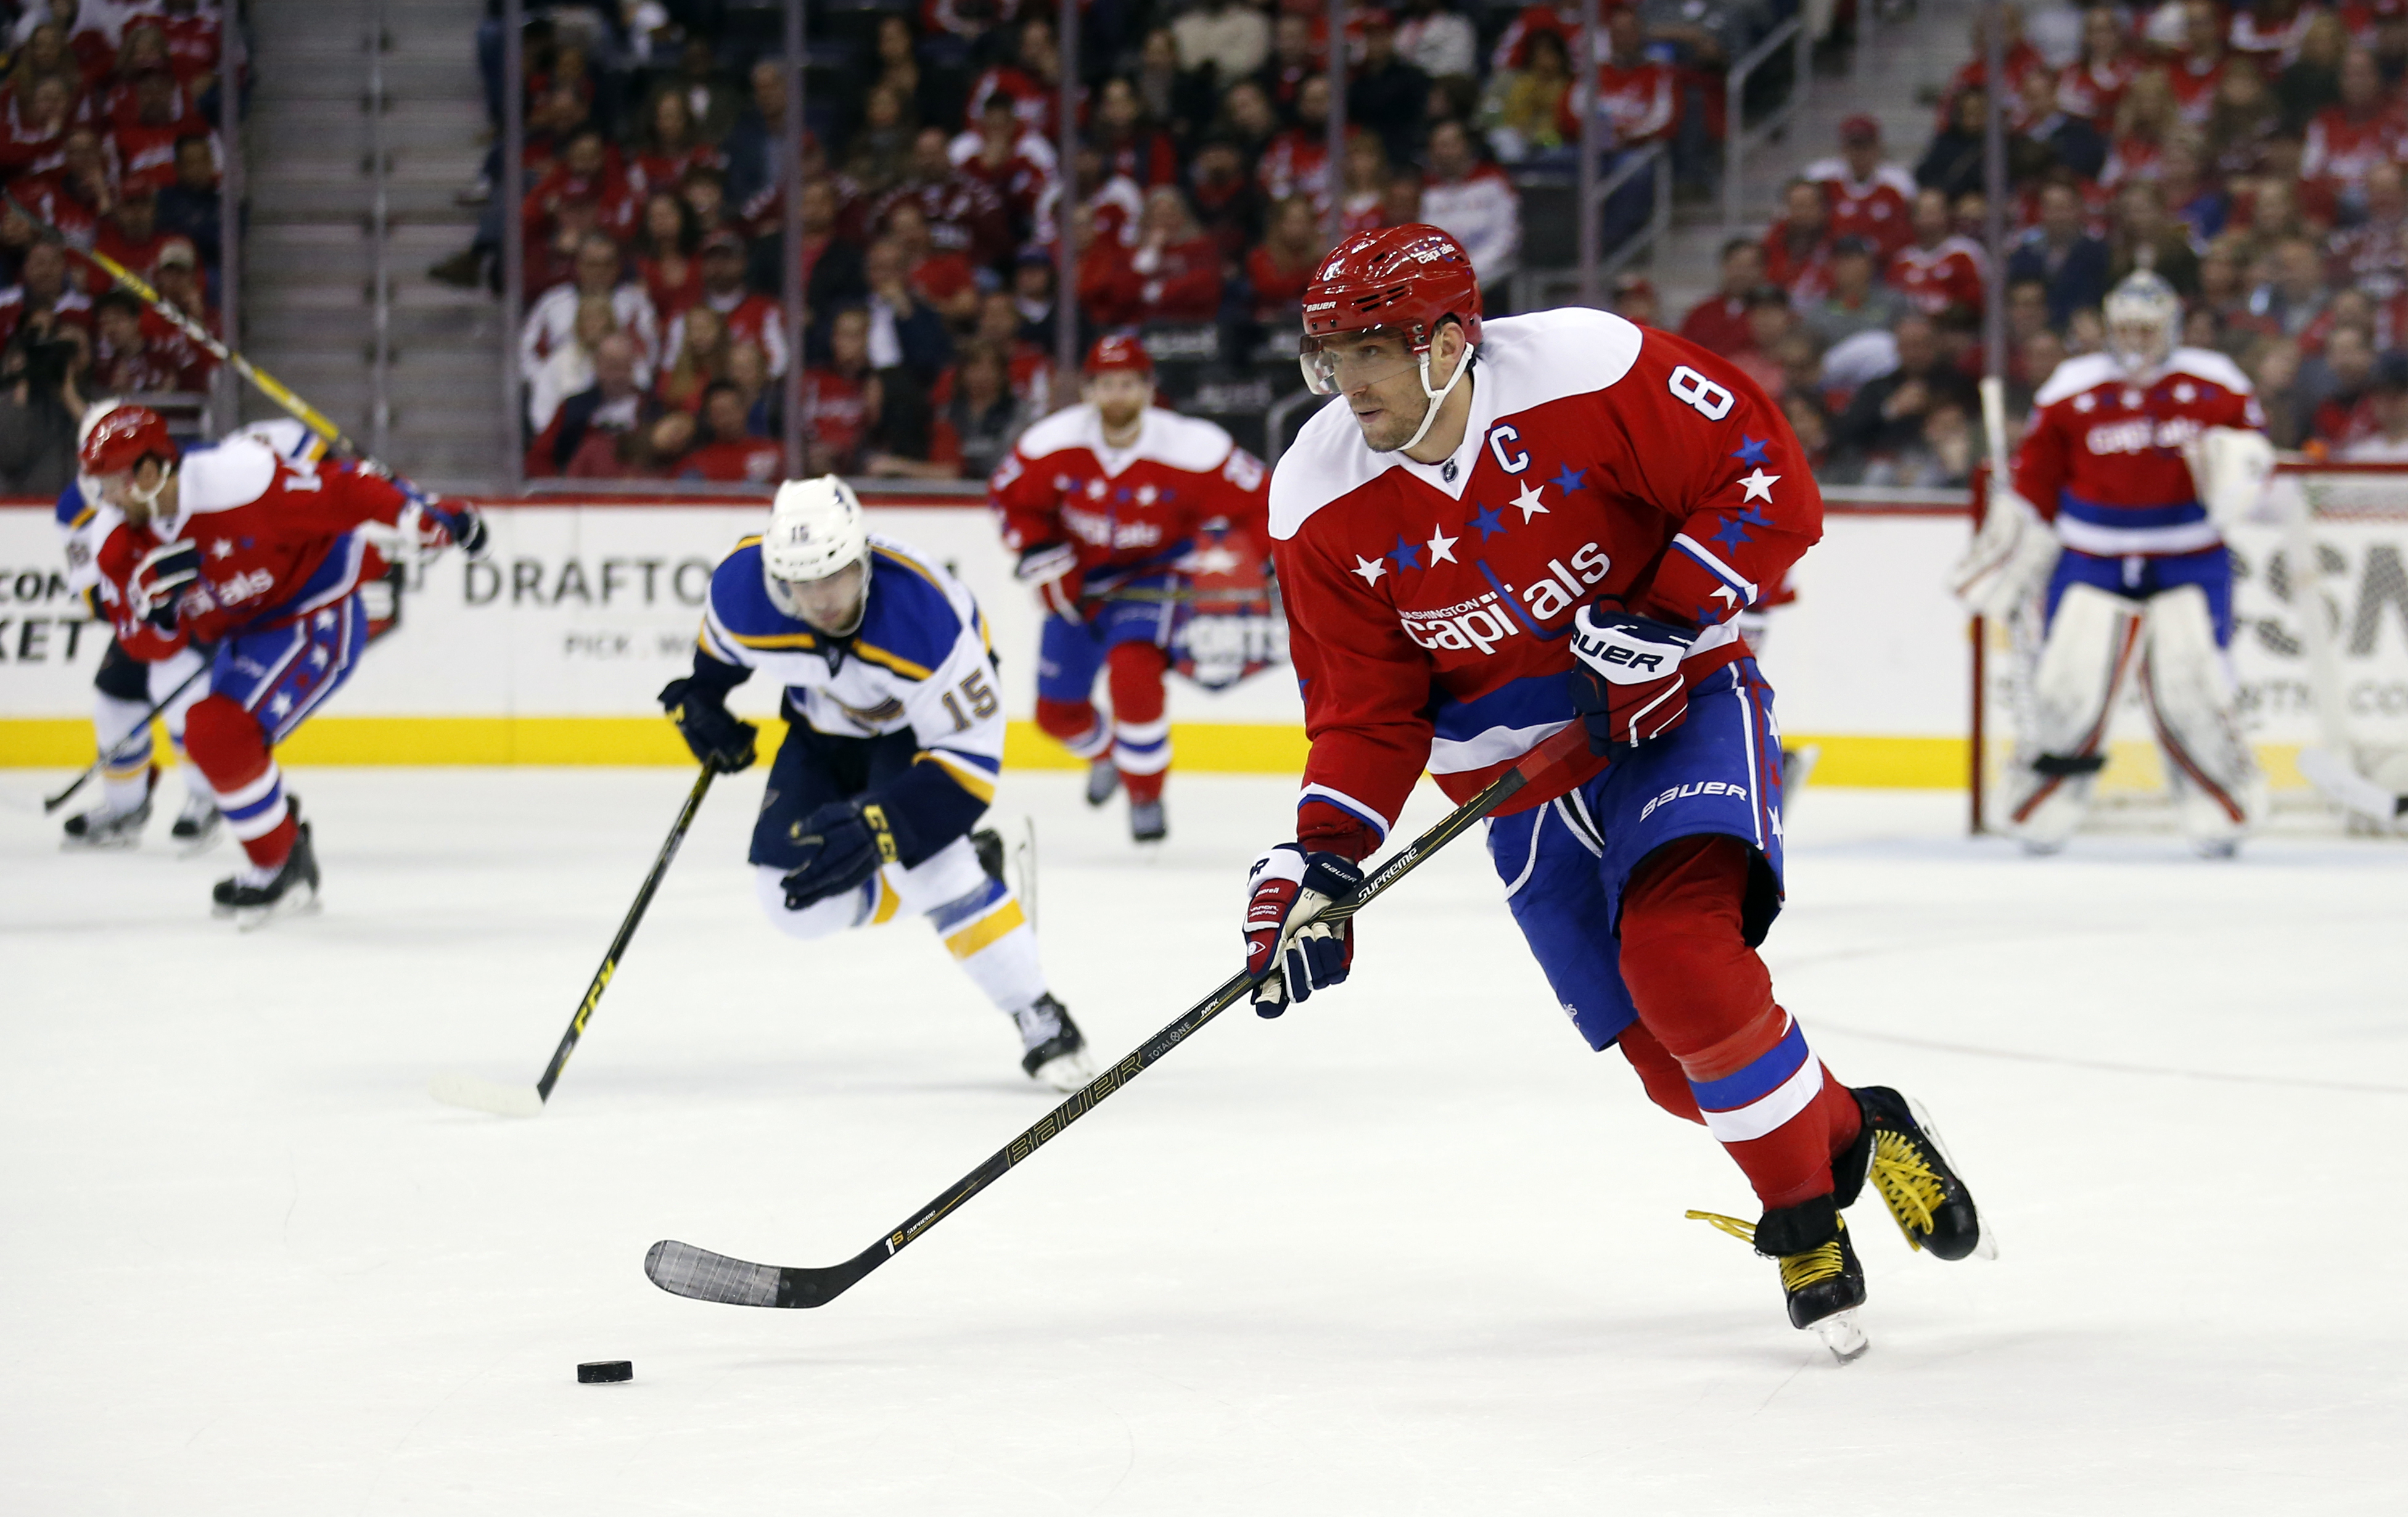 Ovechkin says Caps already excited for playoffs